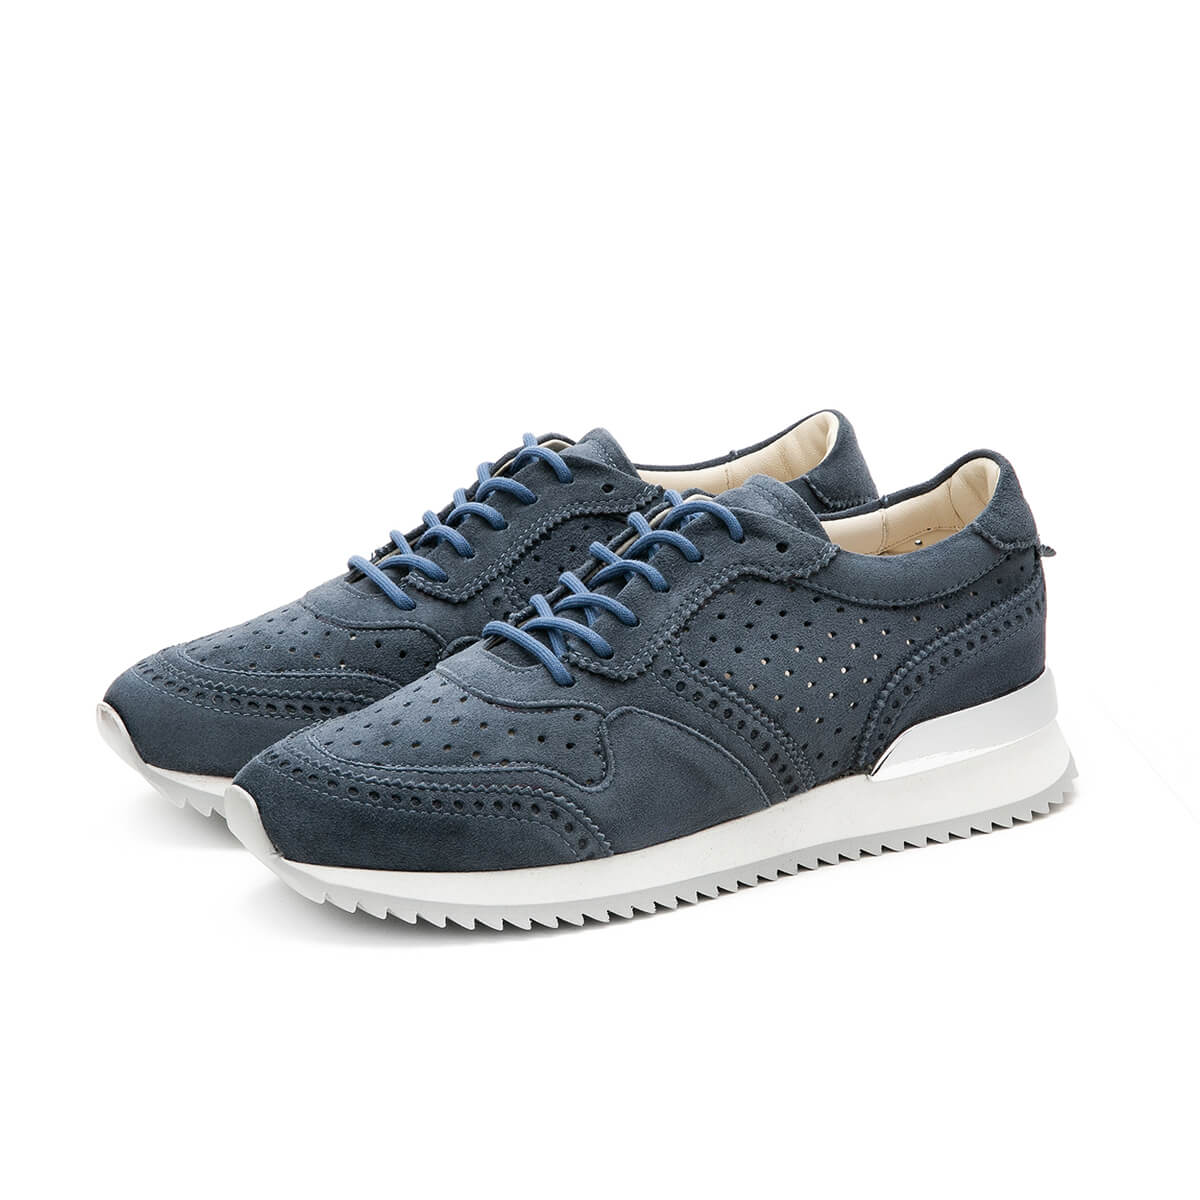 Running Sole perforated Sneaker denim color